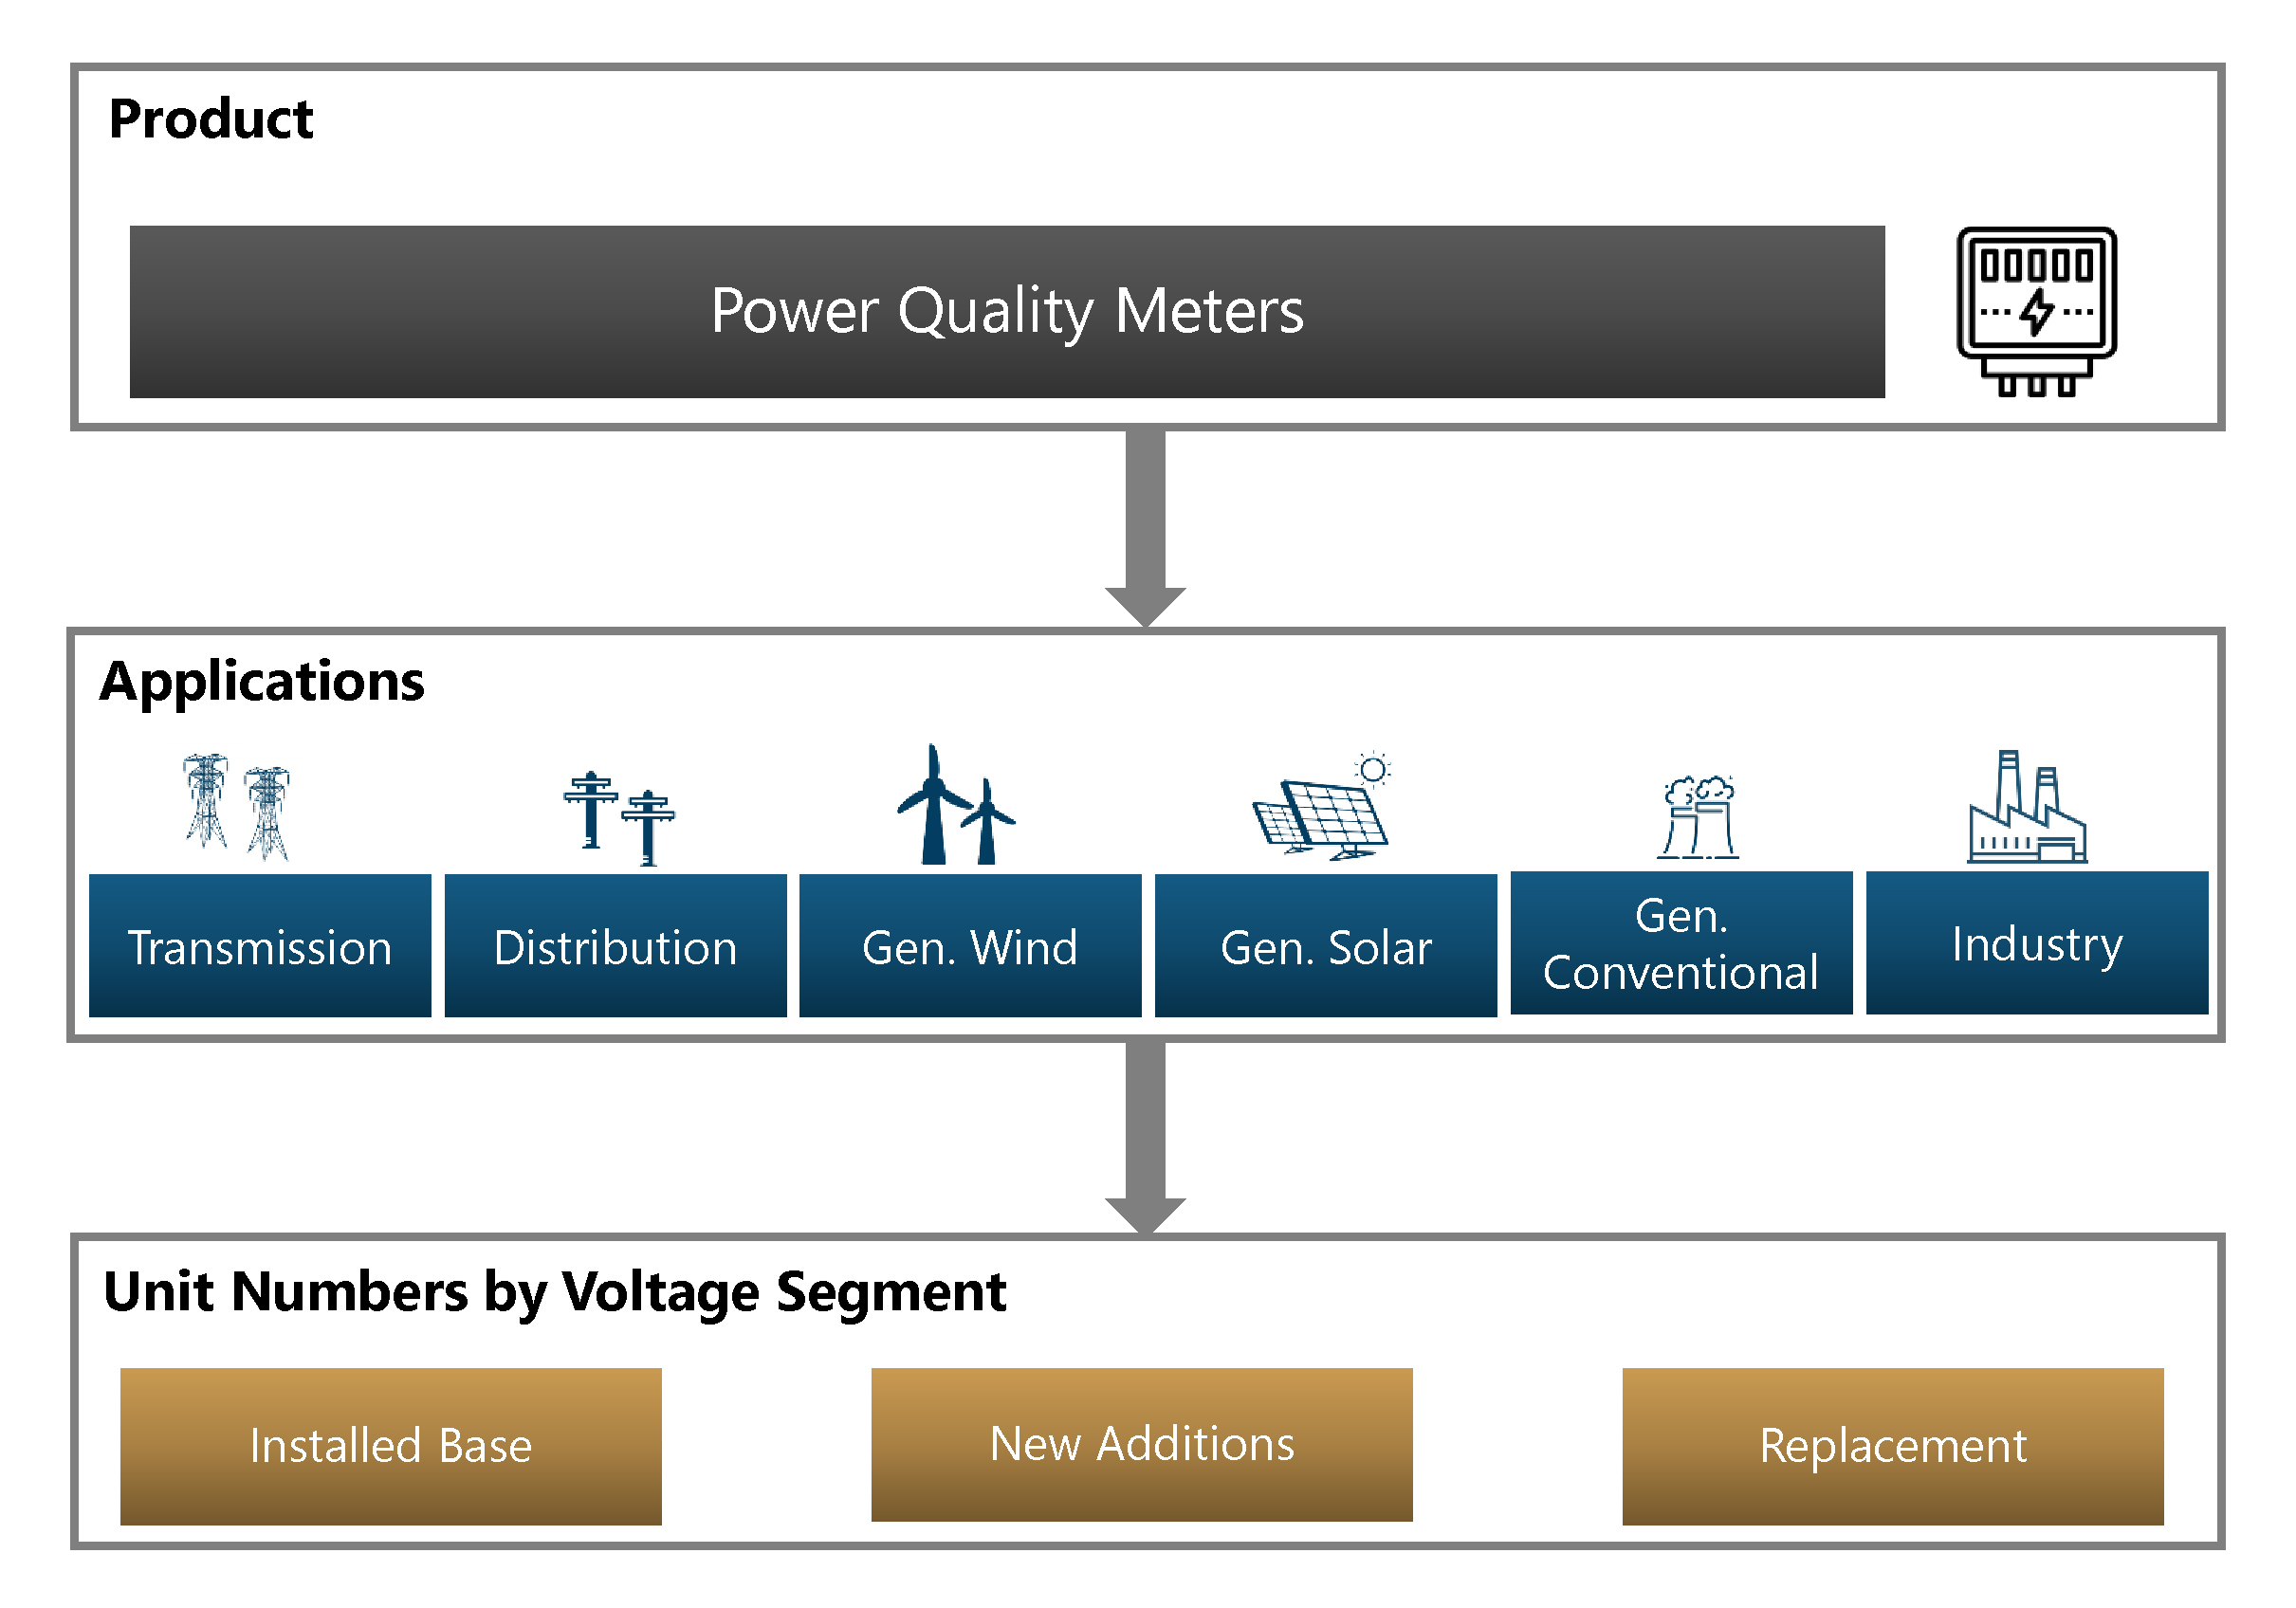 Scope of Market Sizing PQ meters installations, annual additions and replacements for all regions. Product/Power Quality Meters/Applications/Transmission/Distribution/Gen. Wind/Gen. Solar/Gen. Conventional/Industry/Unit Numbers by Voltage Segment/Installed Base/New Additions/Replacement